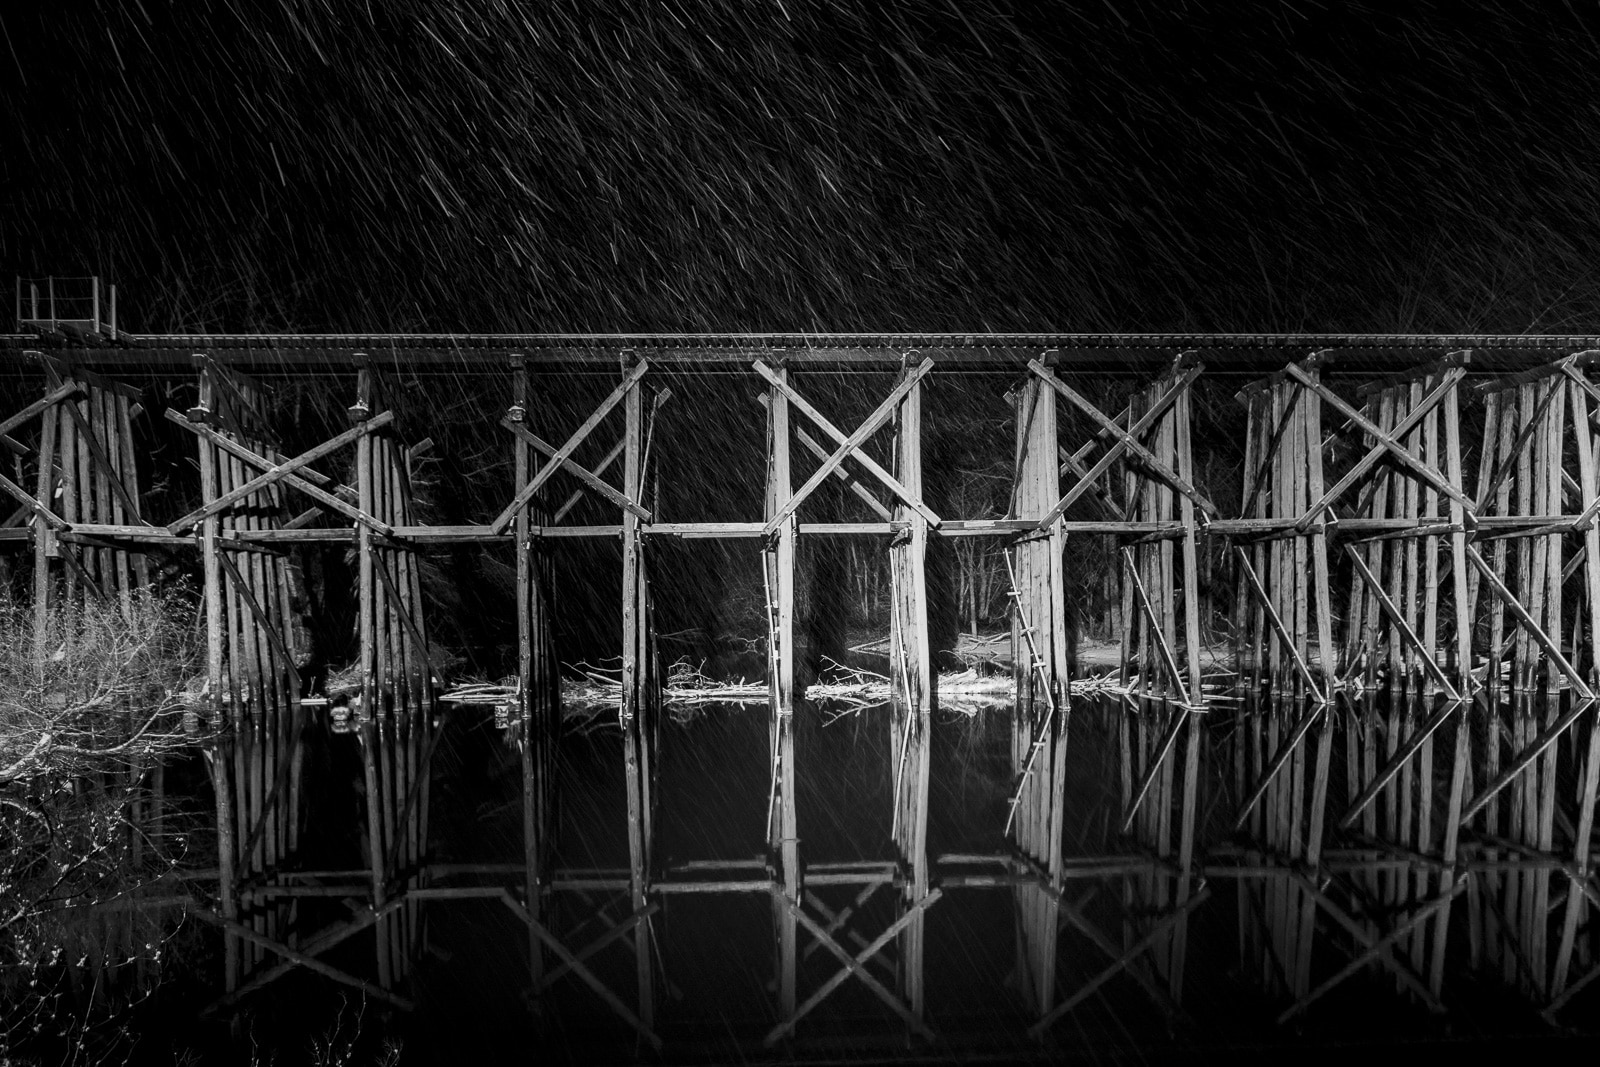 Hamilton Railroad Trestle Bridge at night in the snow